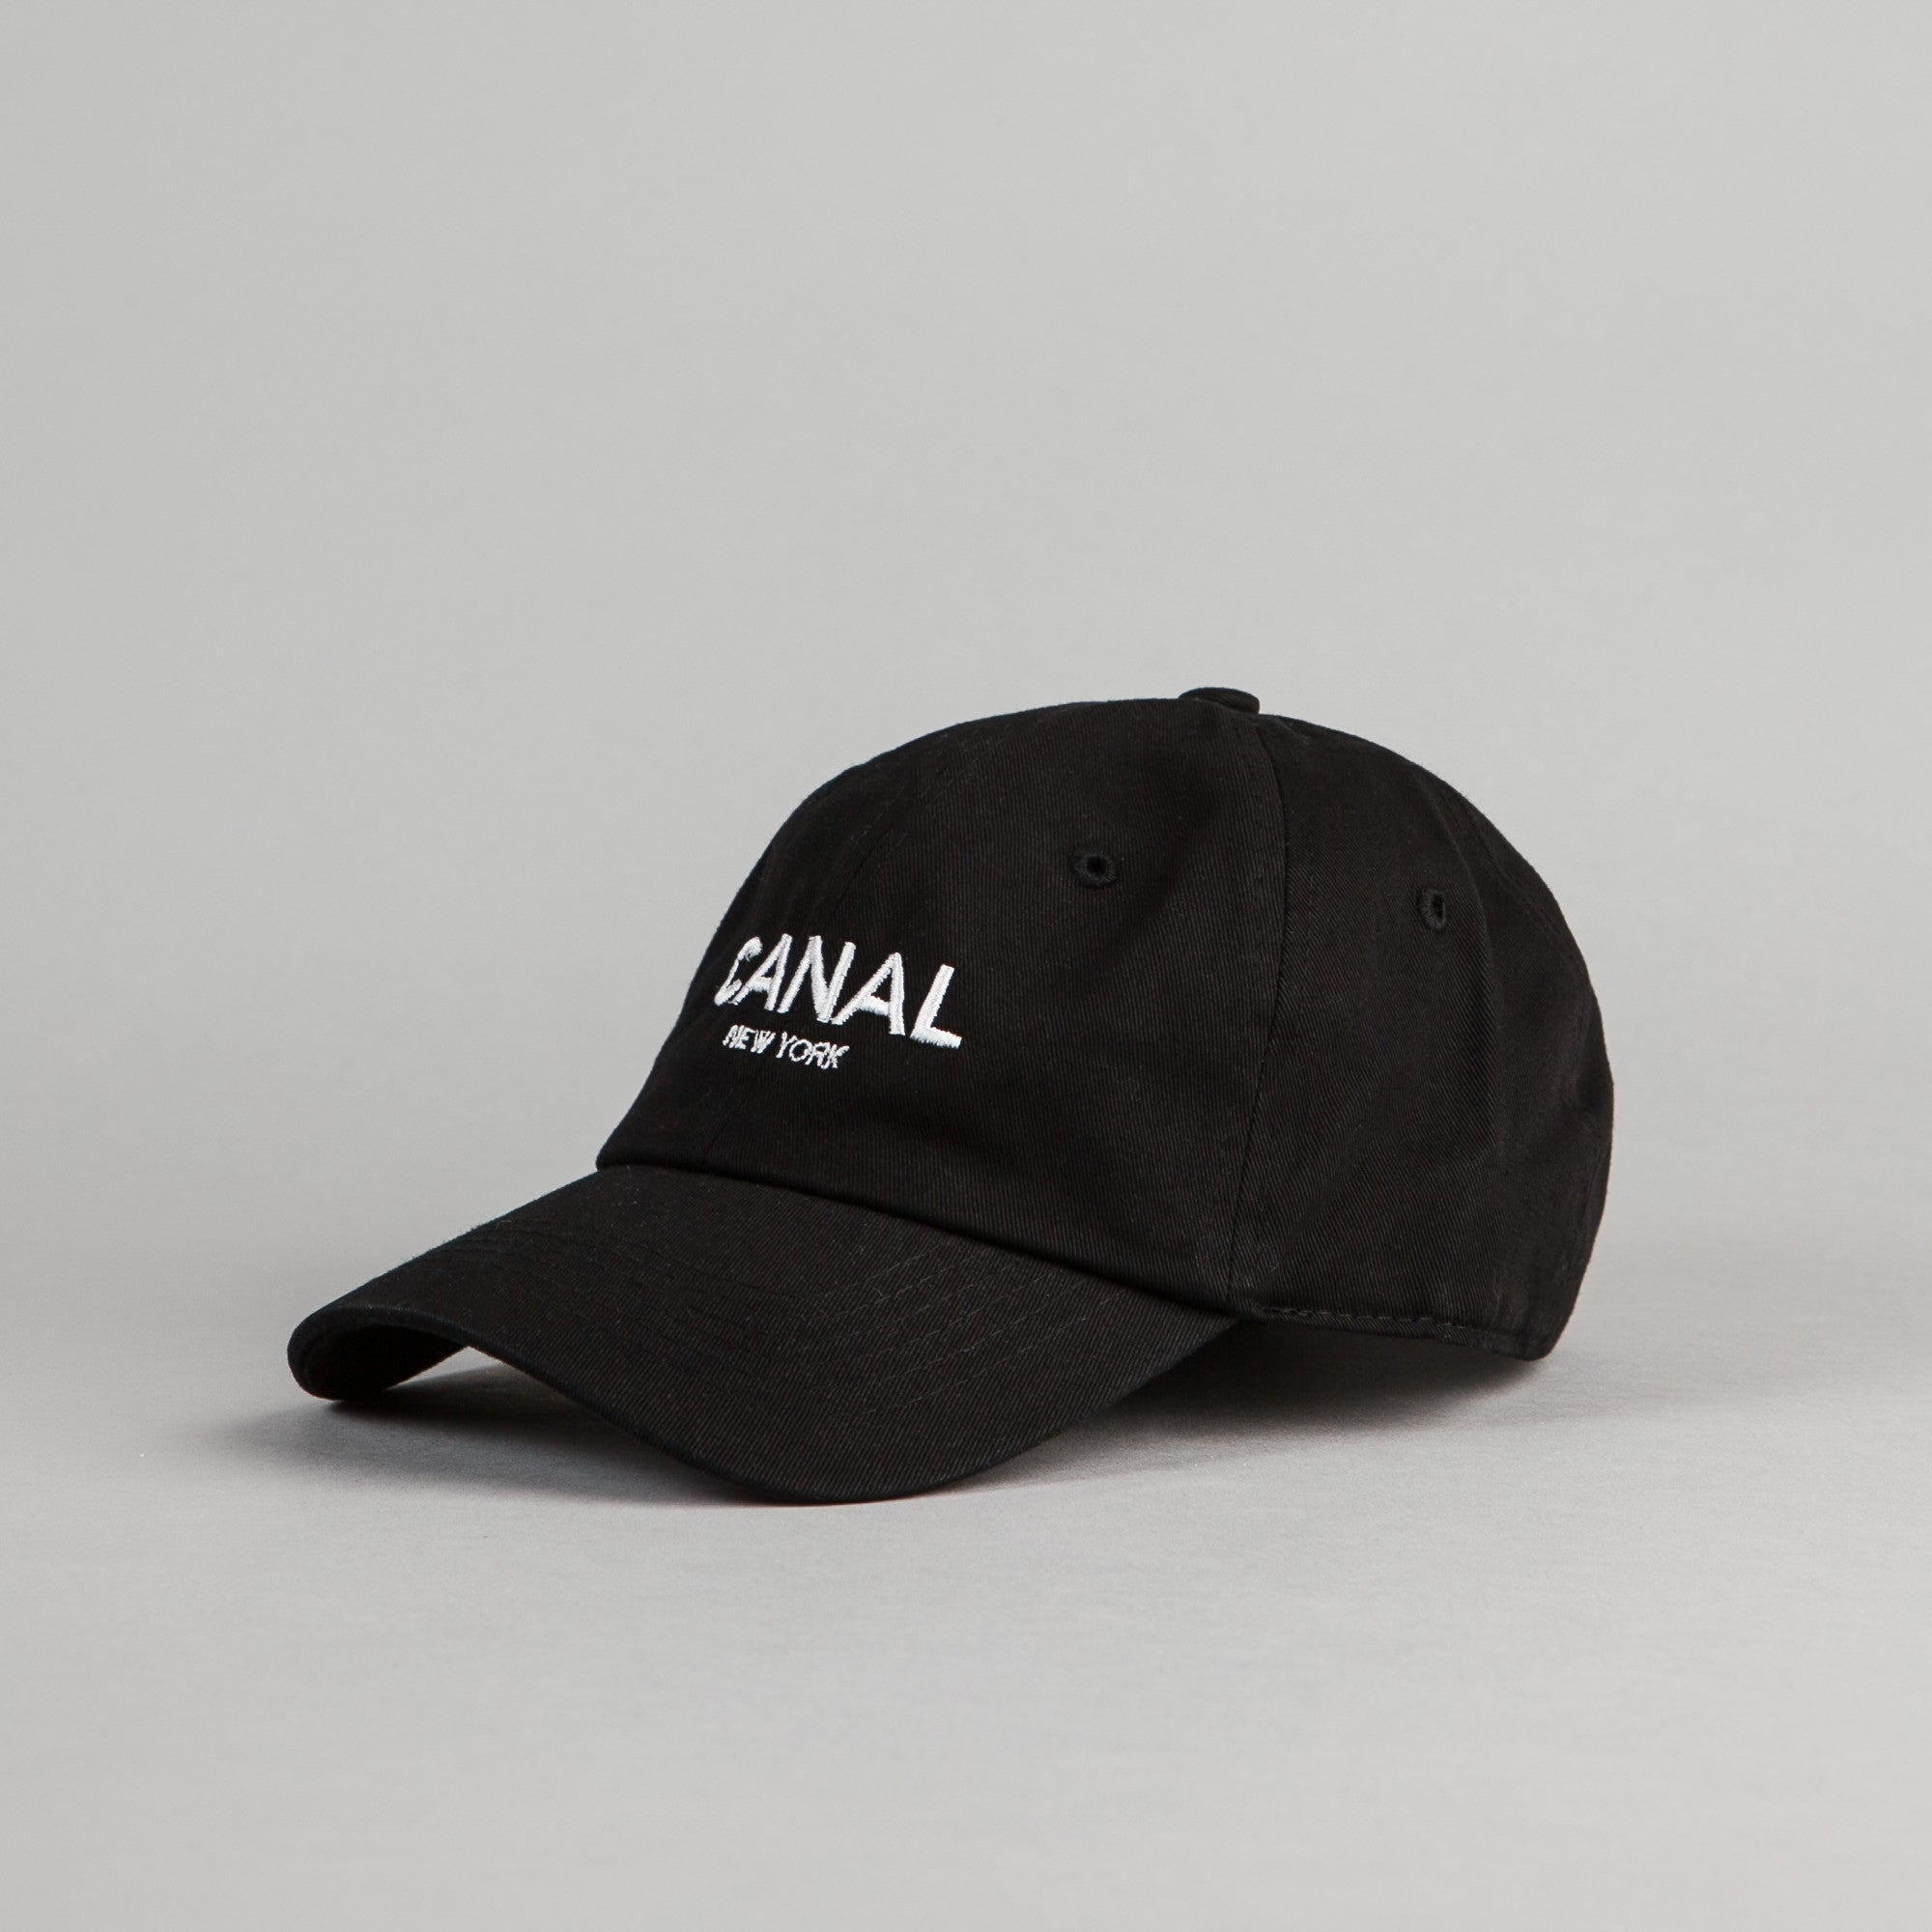 Canal New York Adult Headwear 6 Panel Cap - Black